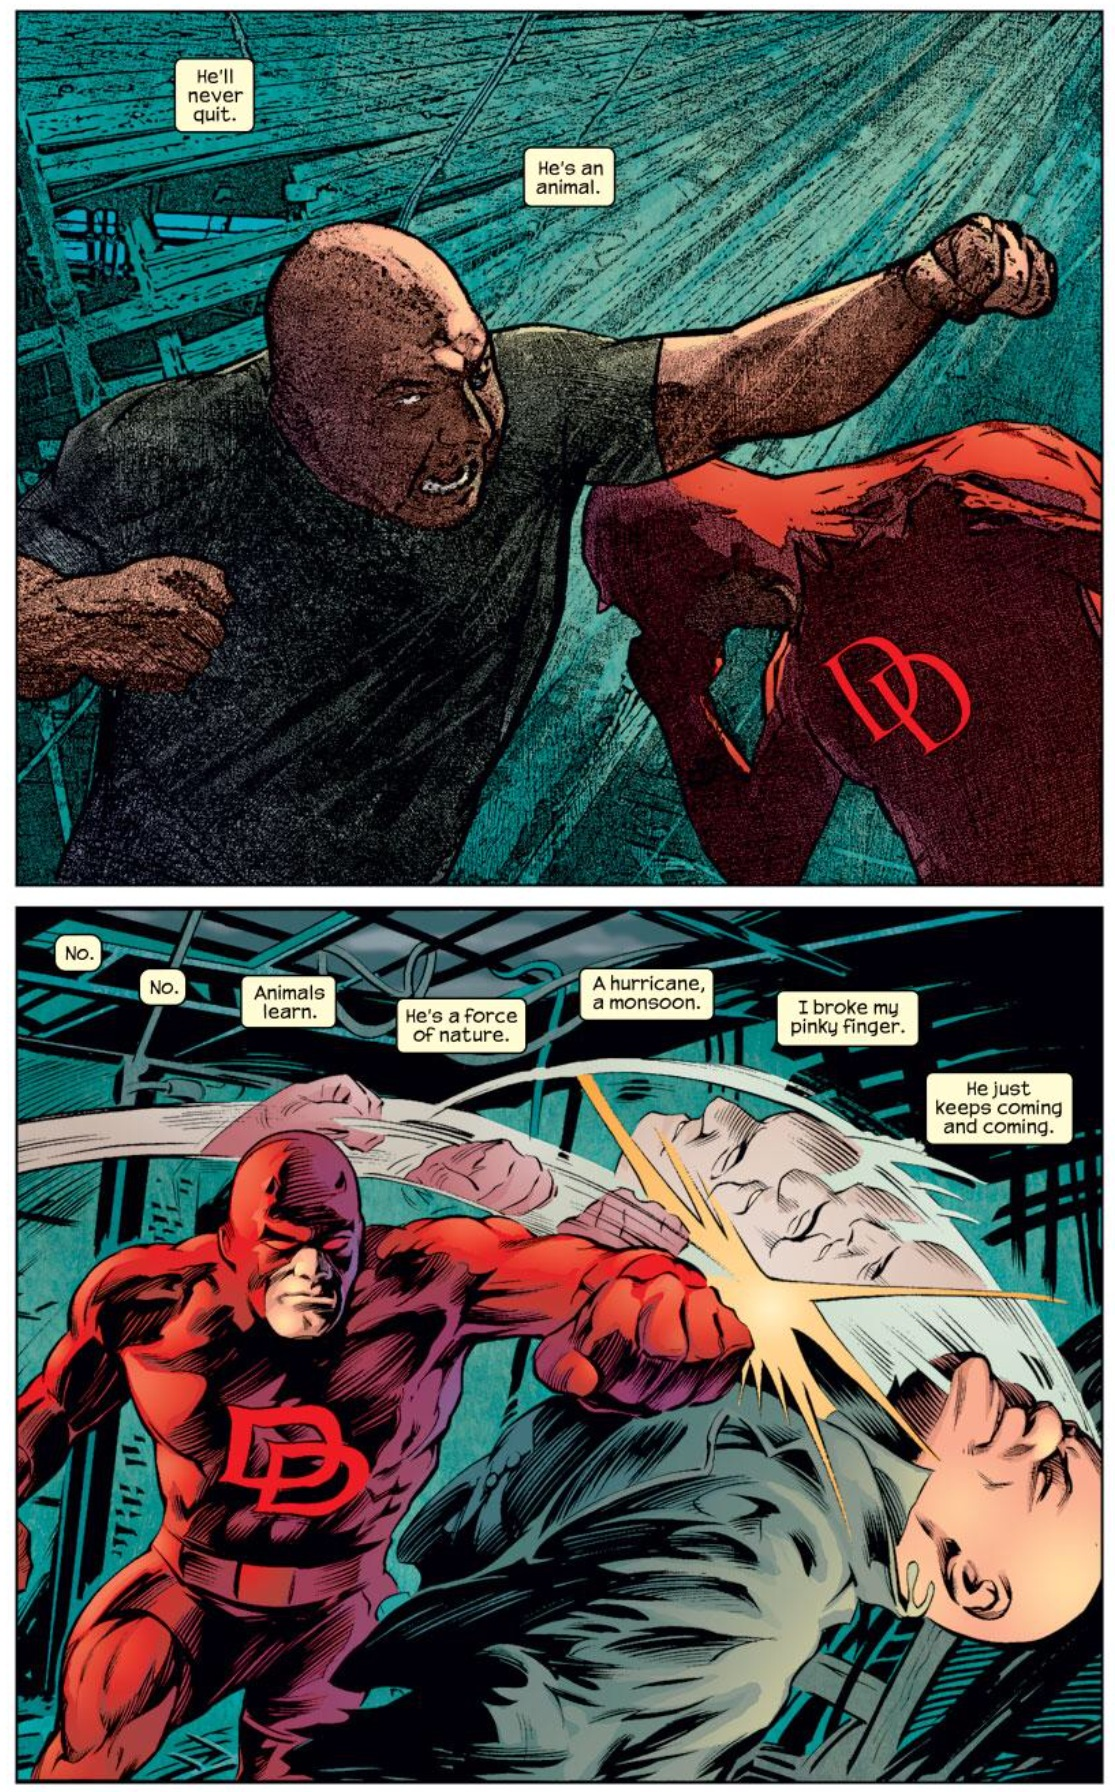 Daredevil Vs Kingpin Who's the Boss? King...